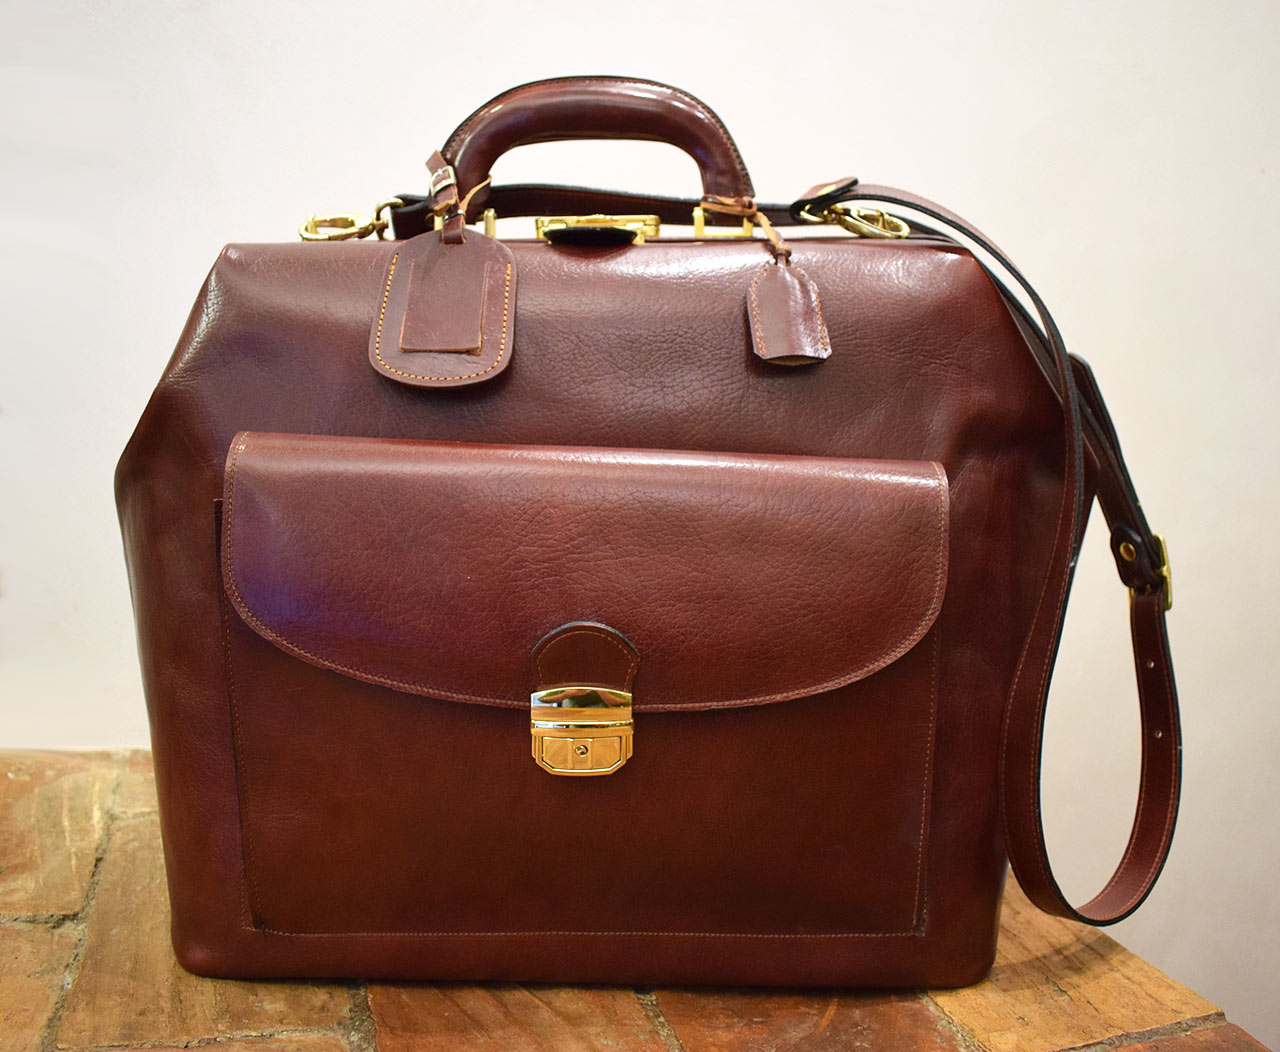 Leather travel bag Mercury - Mancini Leather